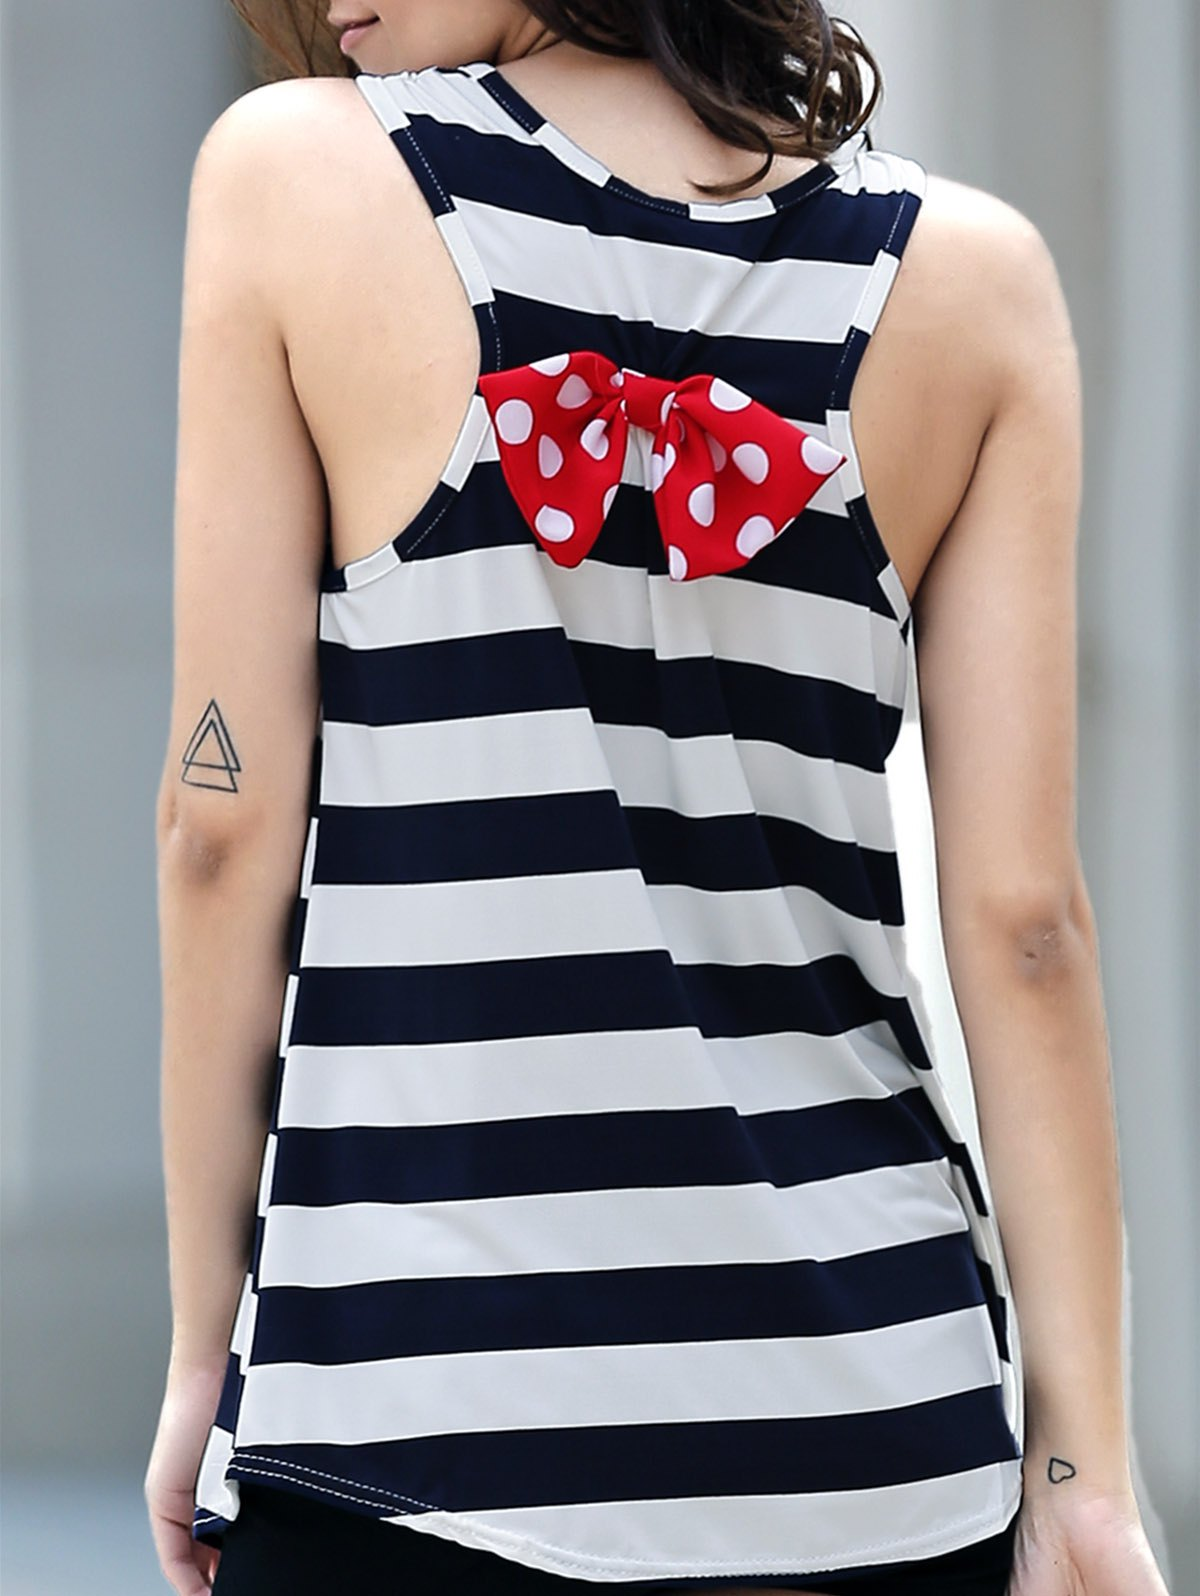 Trendy Scoop Neck Sleeveless Polka Dot Bowknot Decorated Tank Top For Women